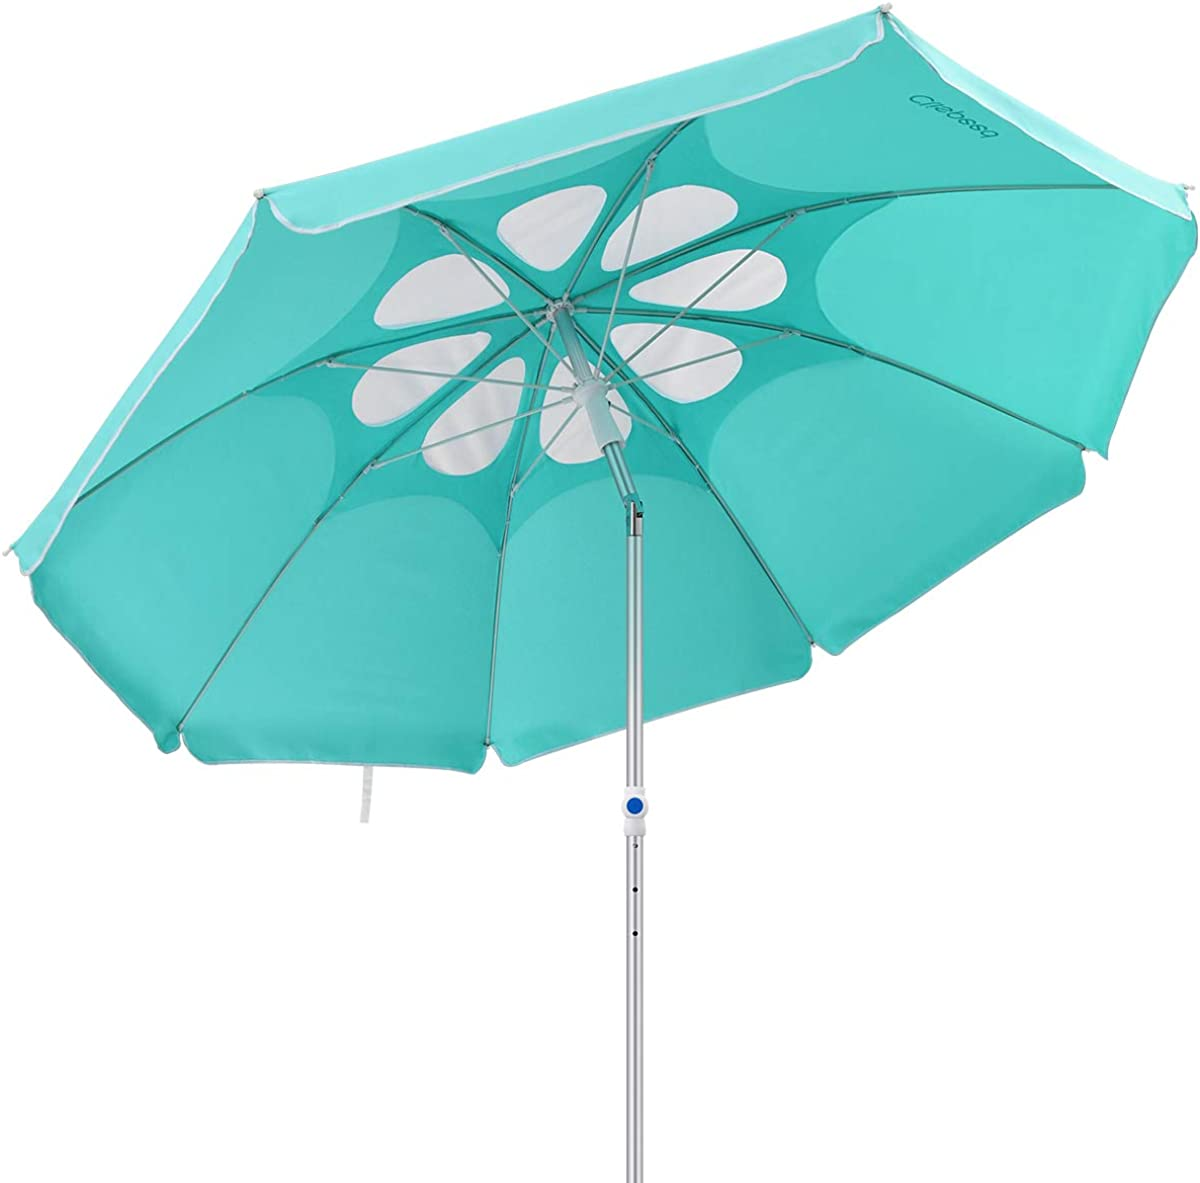 CLISPEED 7 Feet Beach Umbrella